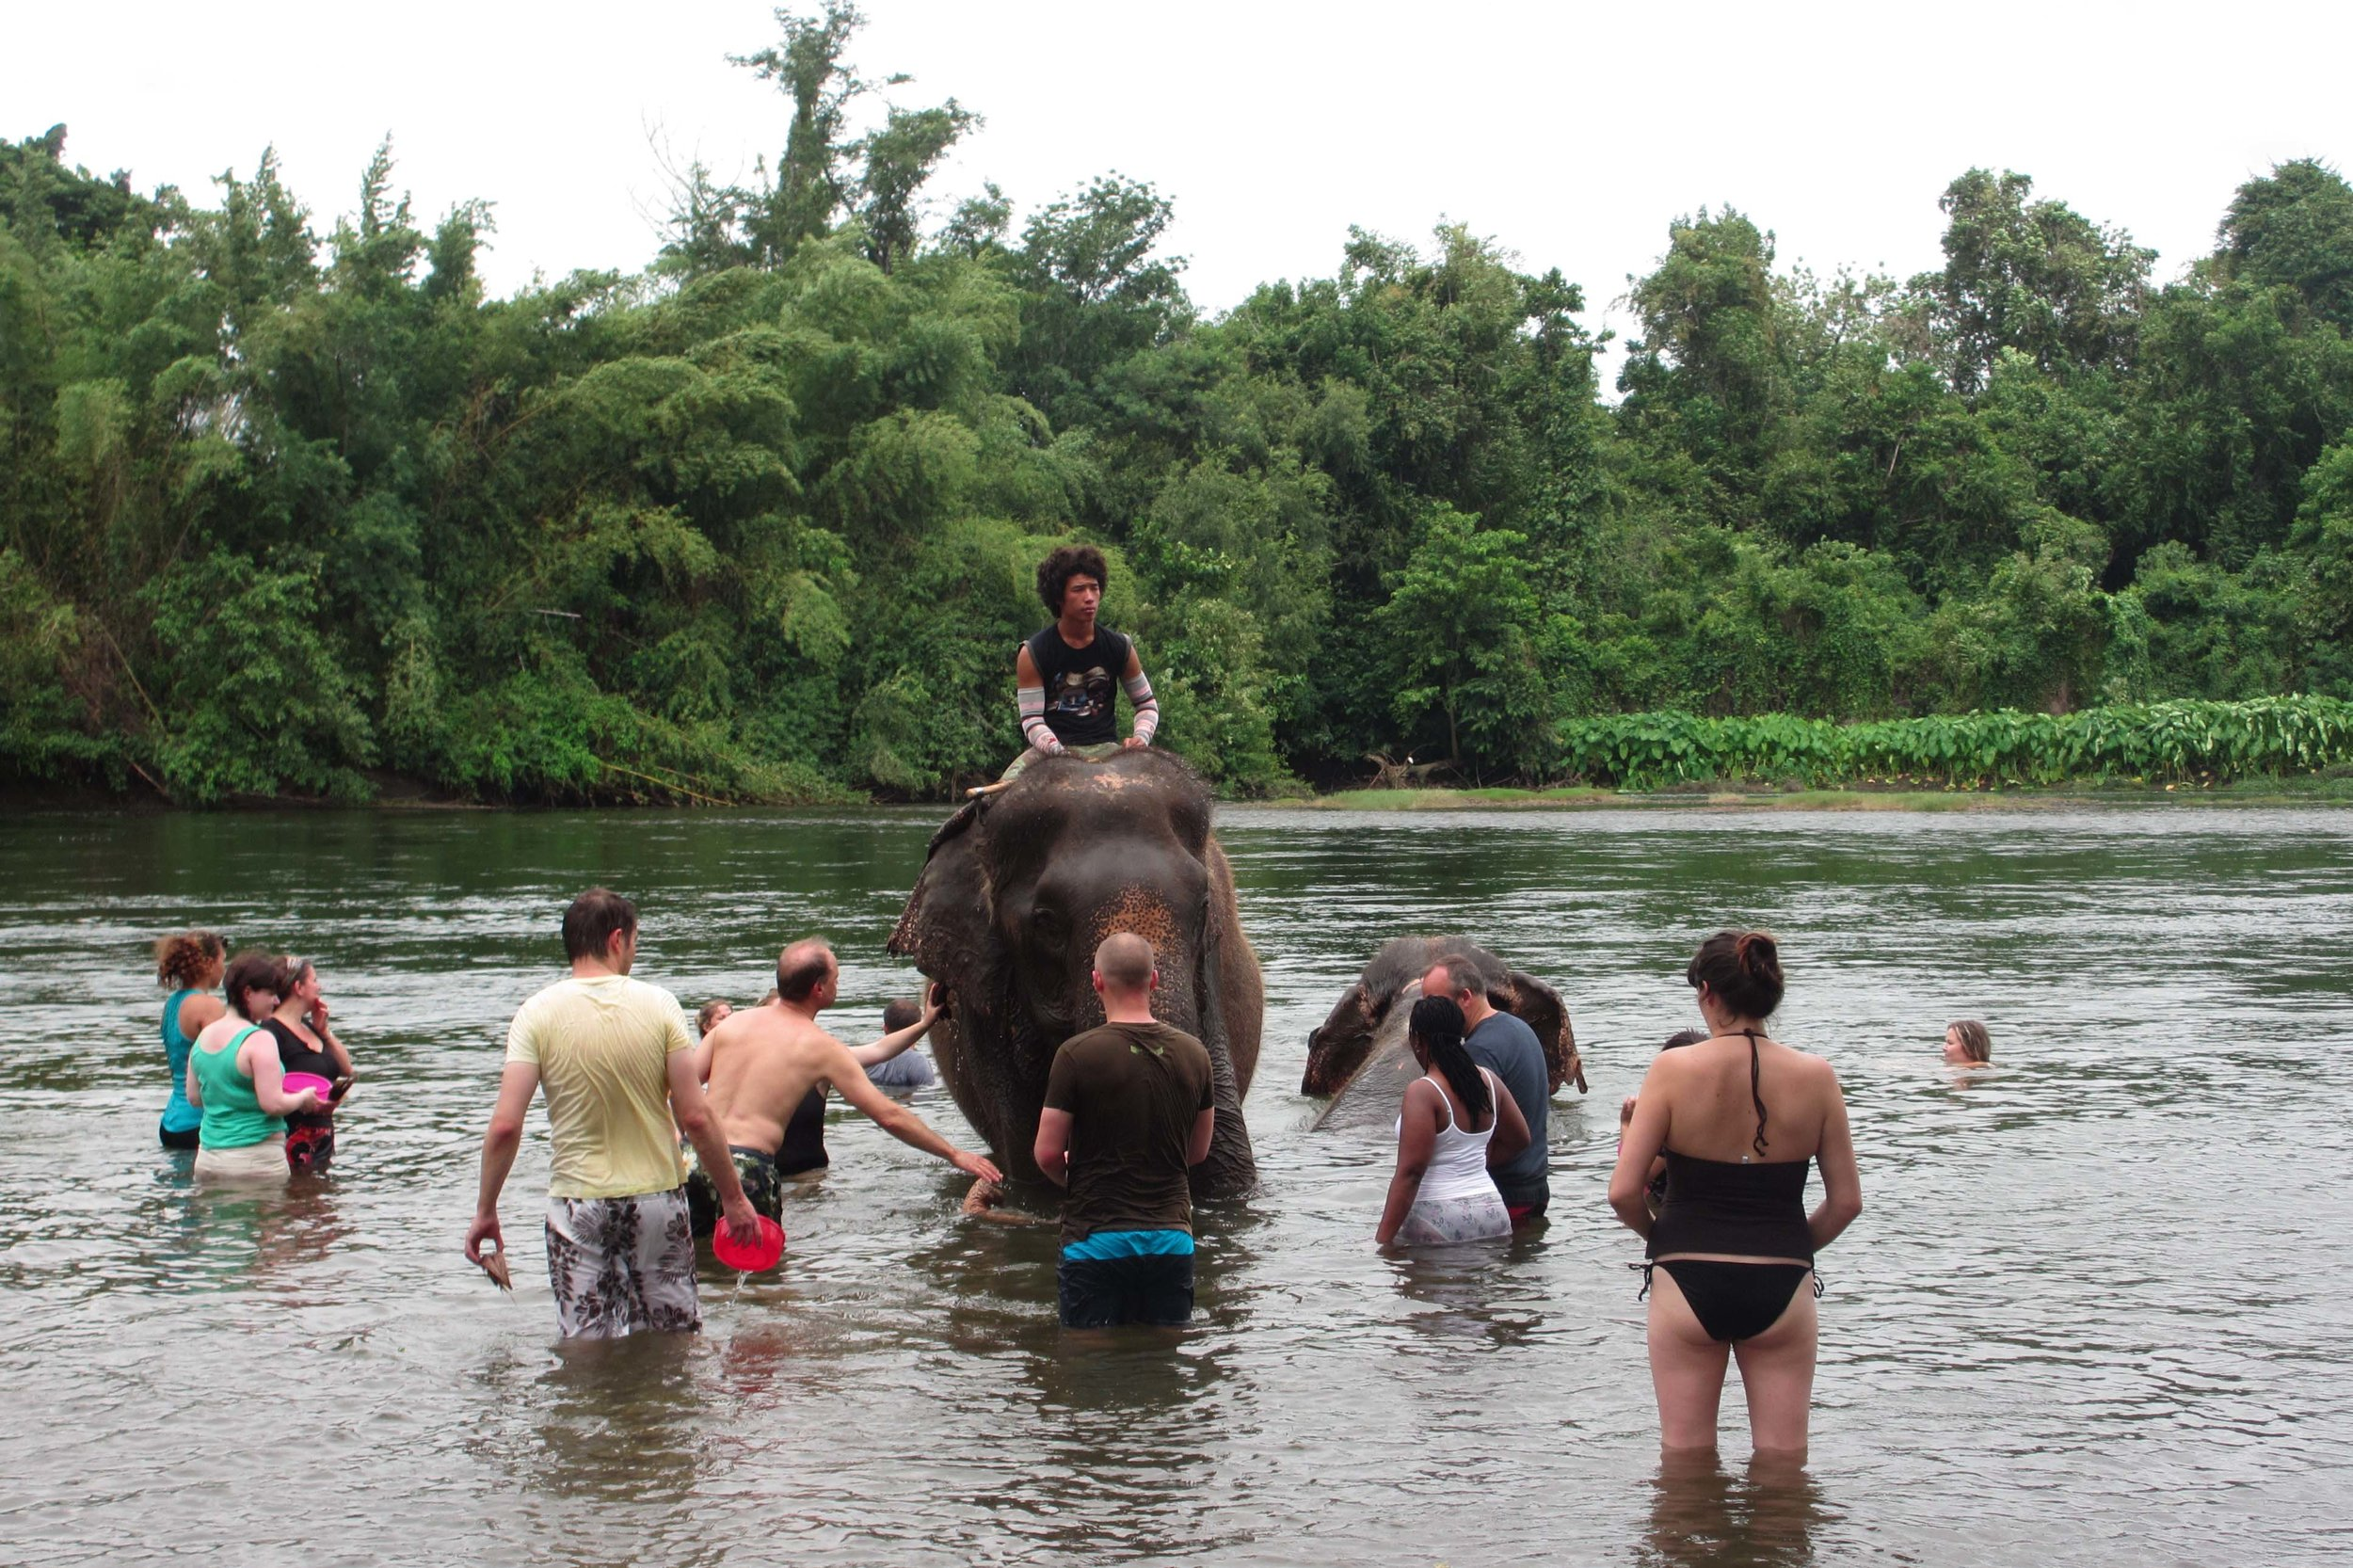 Tourists take a dip in the Khwae River to give two retired working elephants a good scrub-down with coconut husks at ElephantsWorld in Thailand. Image by Sarah Reid